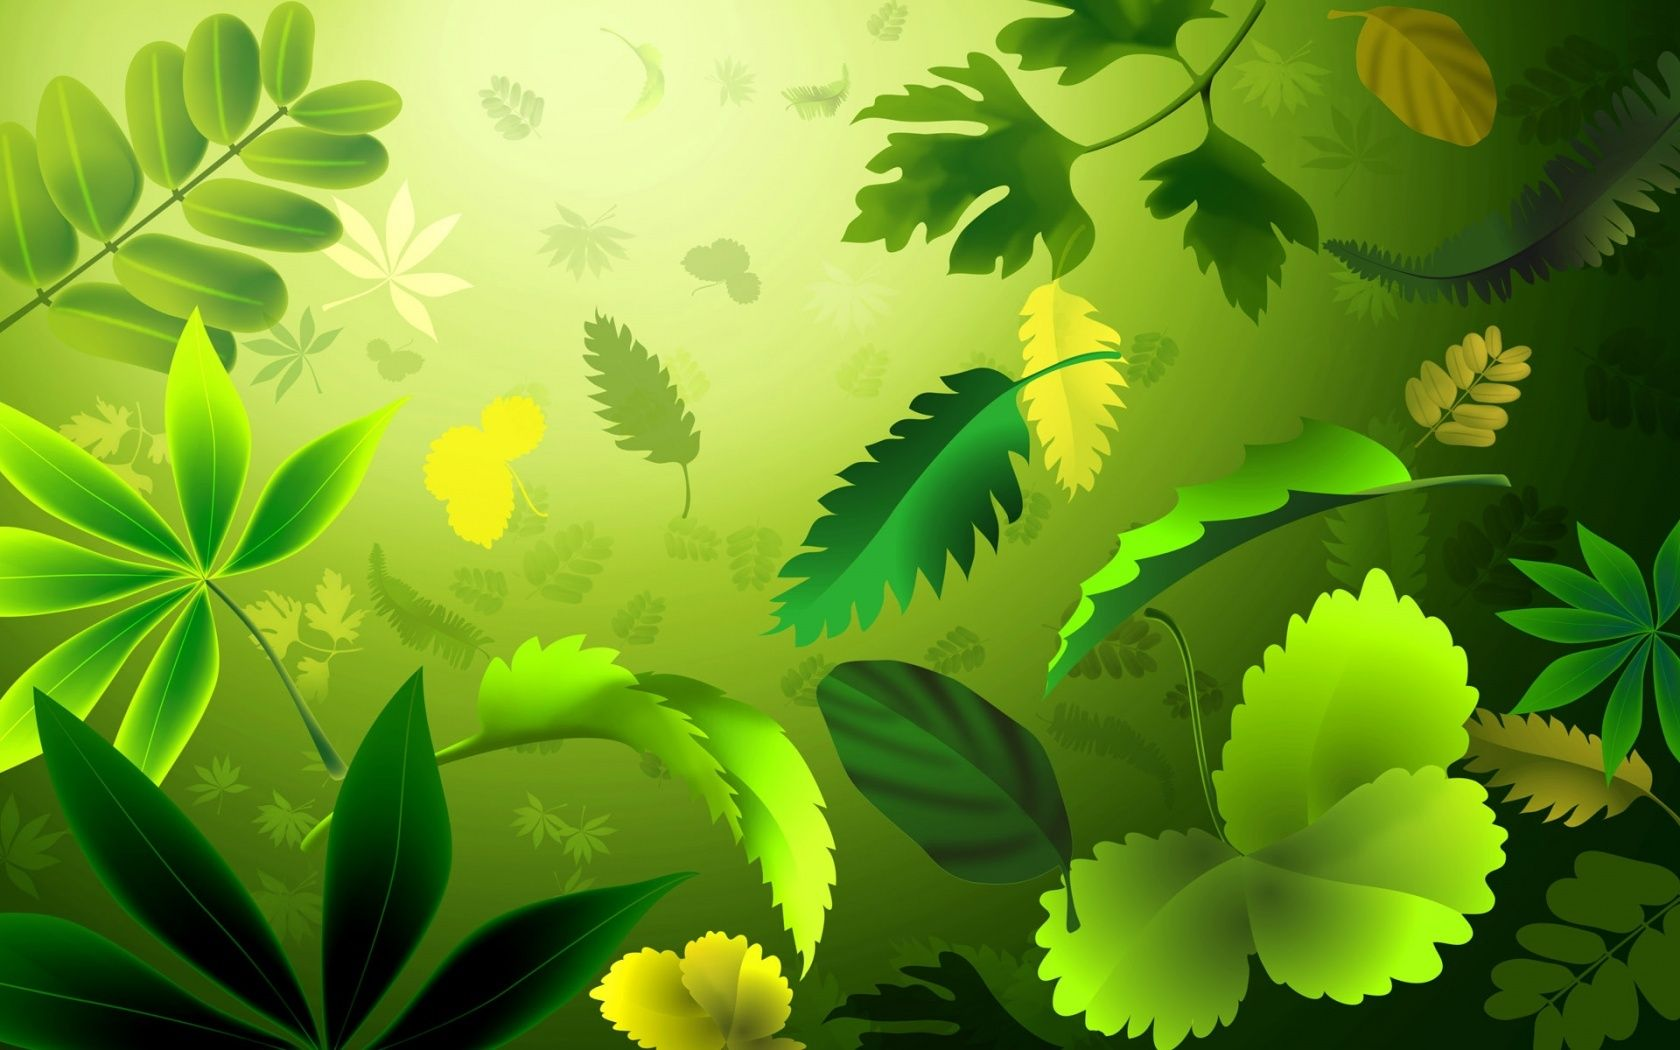 Hd wallpaper nature green - Find This Pin And More On Hd Wallpapers By Receptynakazhdyjden